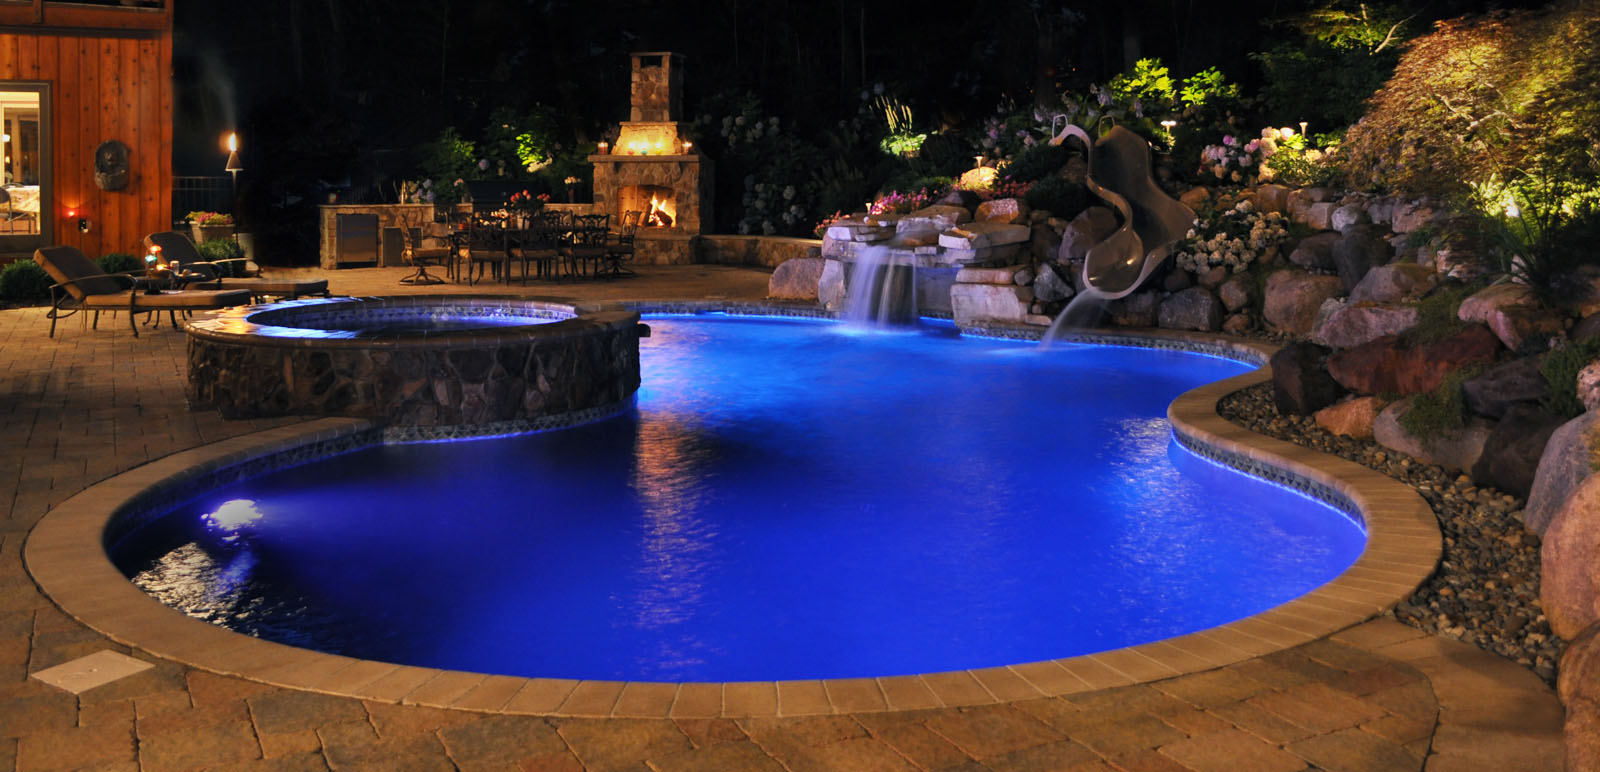 pool, patio, outdoor fireplace, pool waterfall